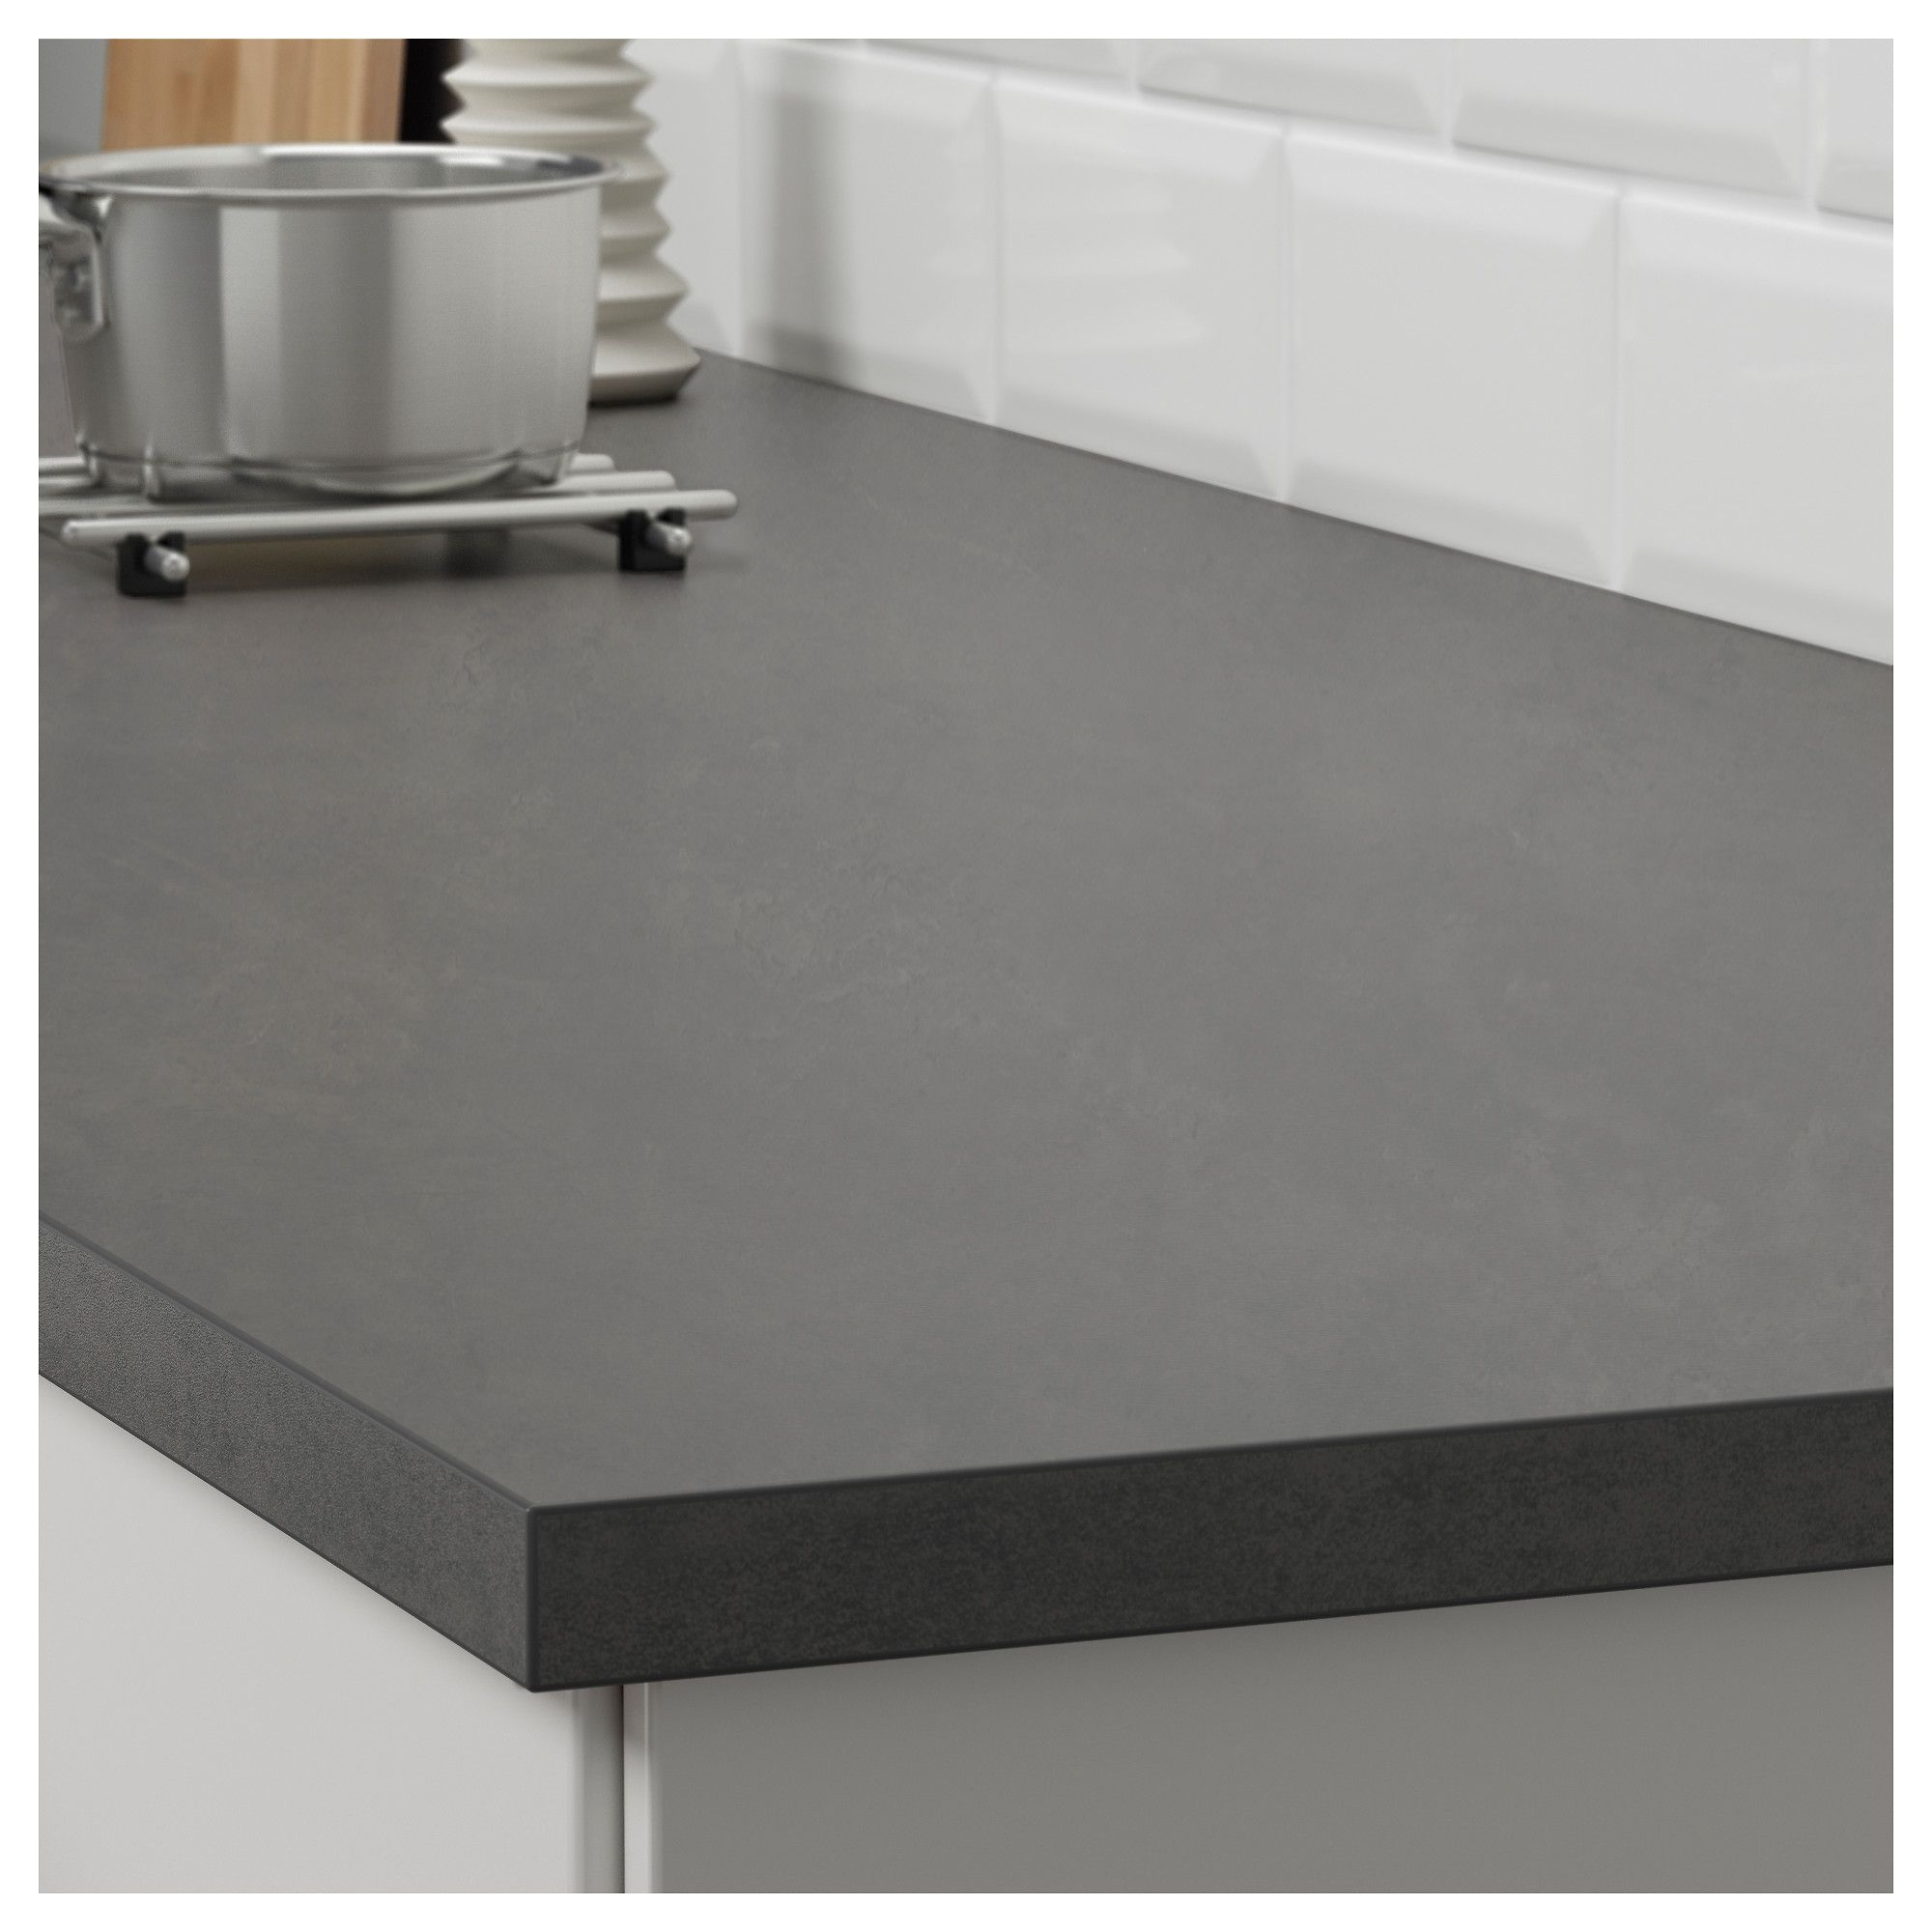 Shop For Furniture Home Accessories More Kitchen Countertop